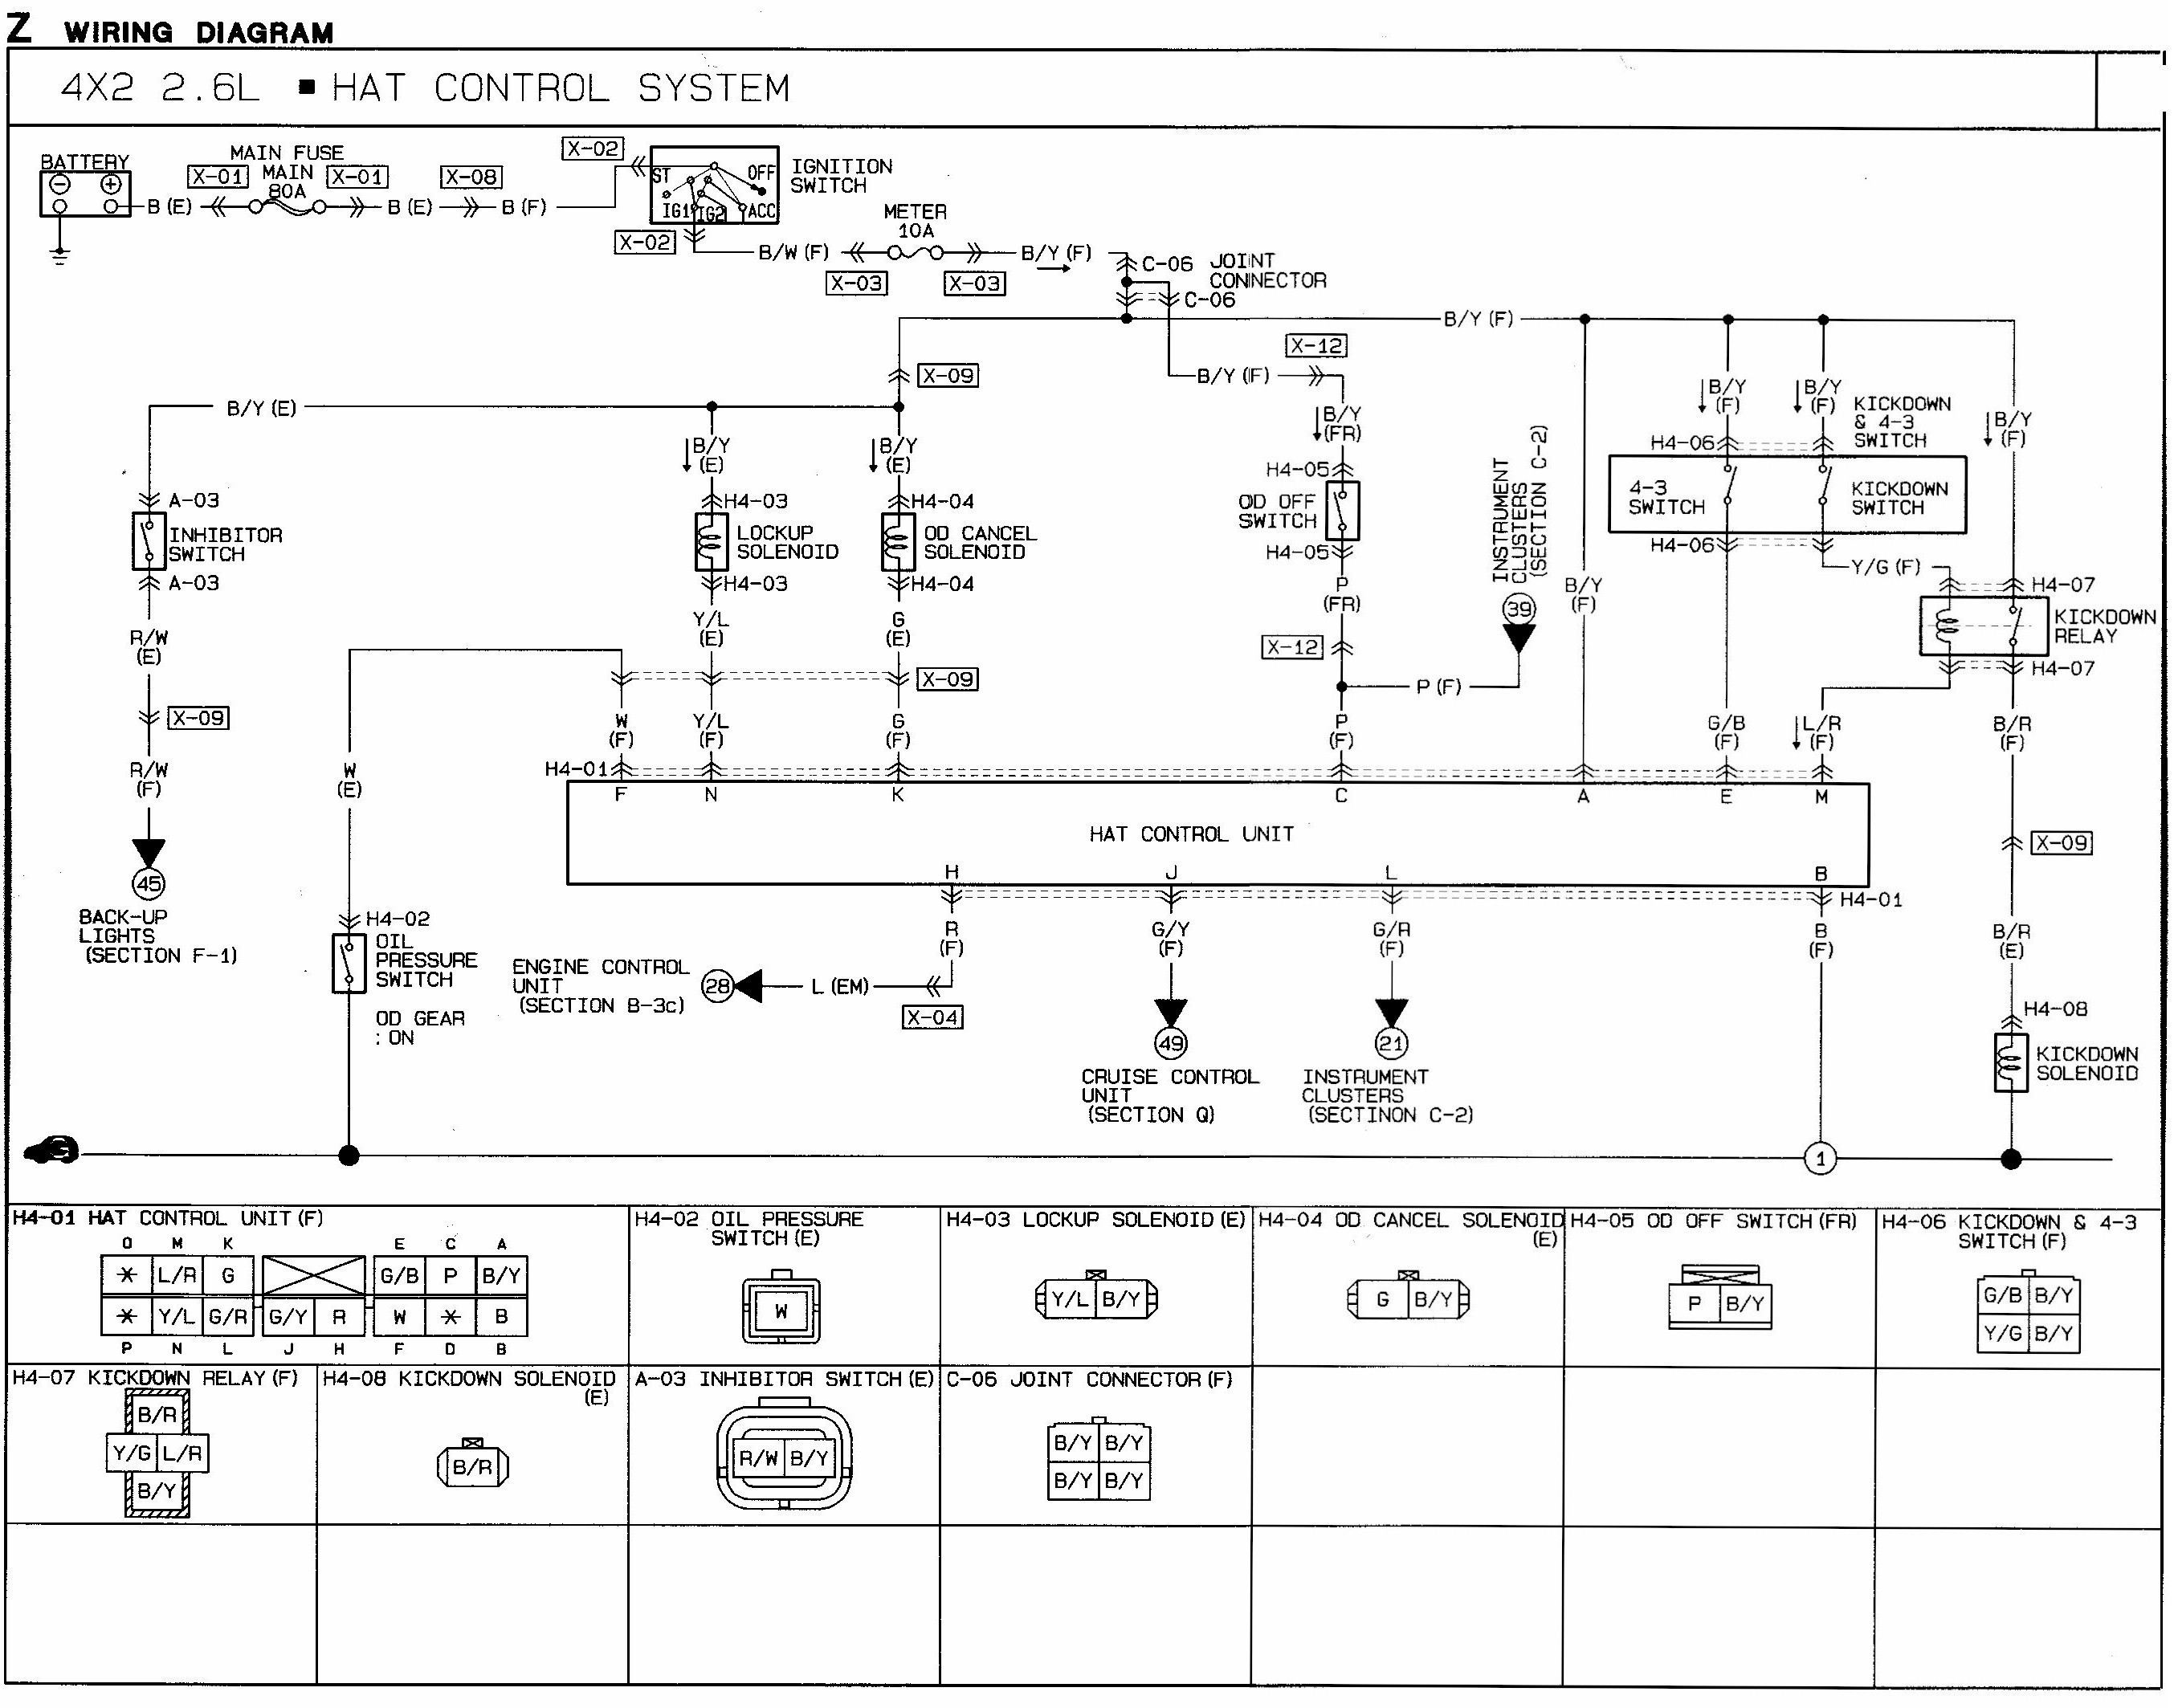 2000 Jeep Cherokee Sport Engine Diagram 1998 Jeep Grand Cherokee Wiring Diagrams Electrical Wiring Diagrams Of 2000 Jeep Cherokee Sport Engine Diagram